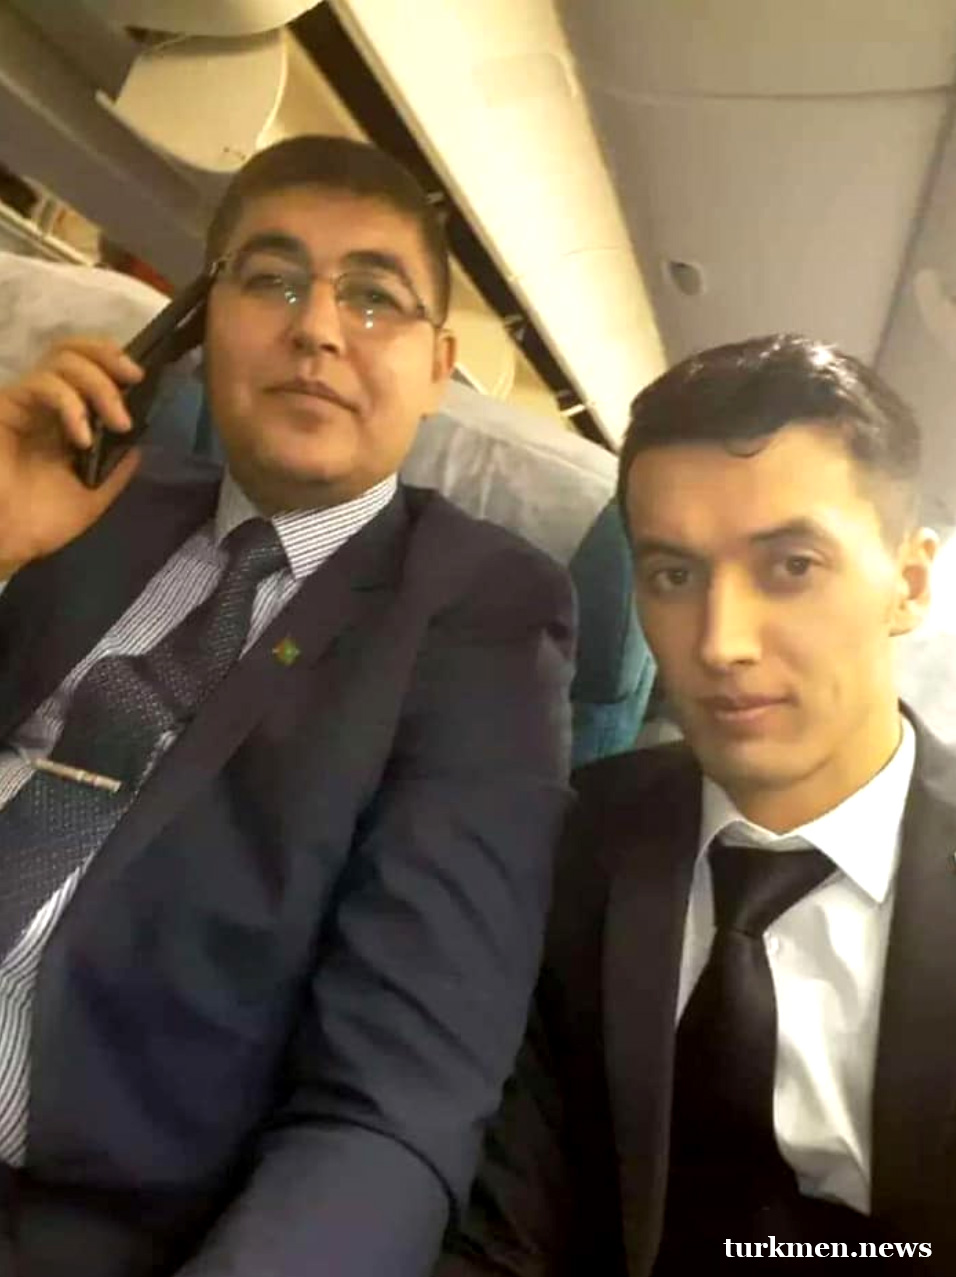 Jailed Omruzak Umarkuliev's Turkmen Student Association Shut Down in Turkey